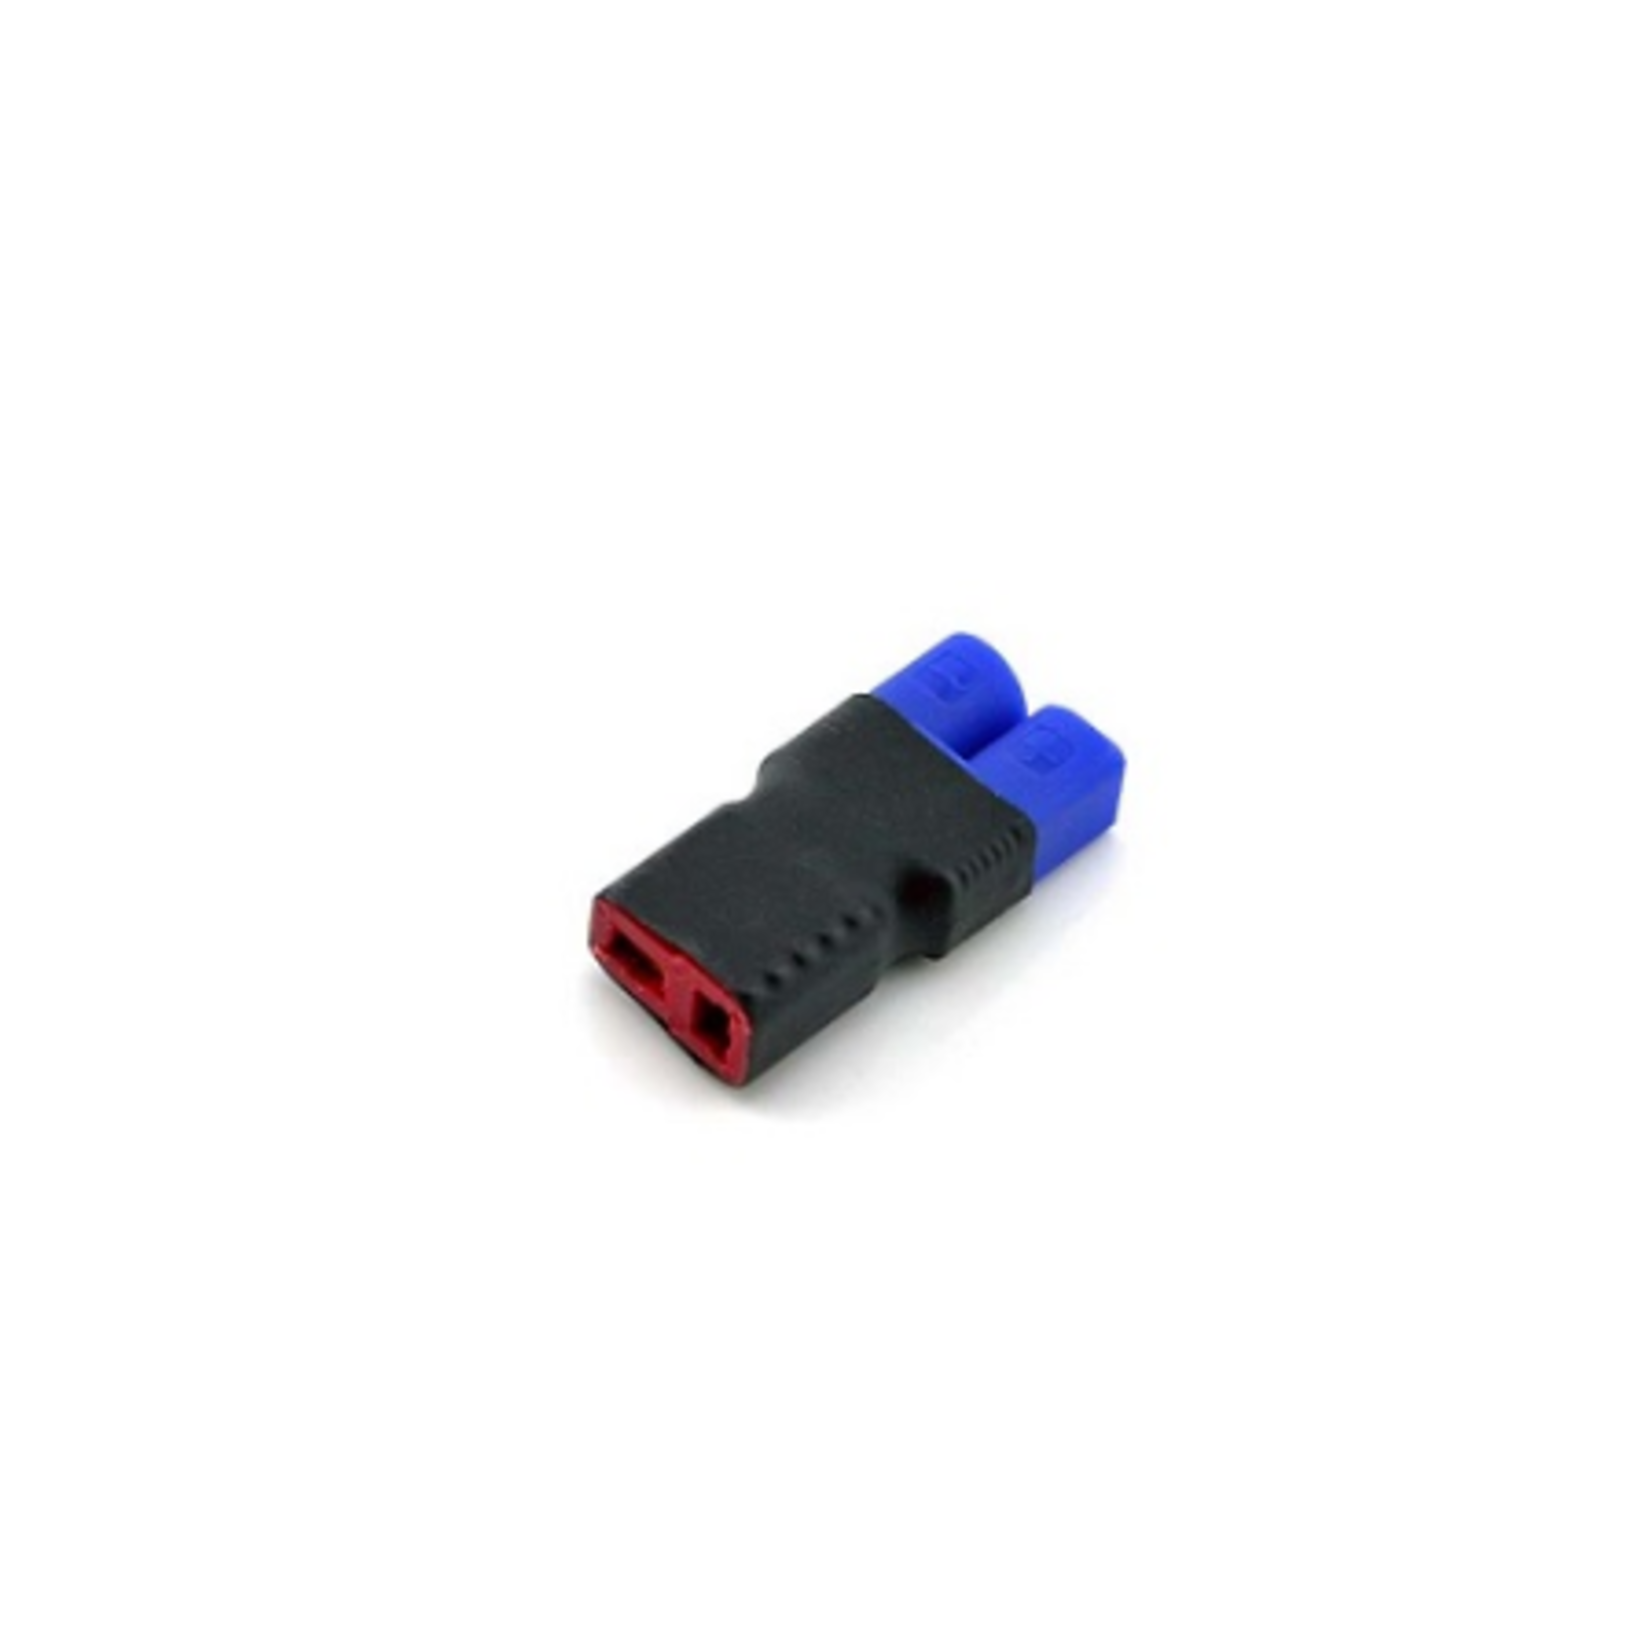 Hobby Details DTC27007 EC3 Male to Deans Female Adapter